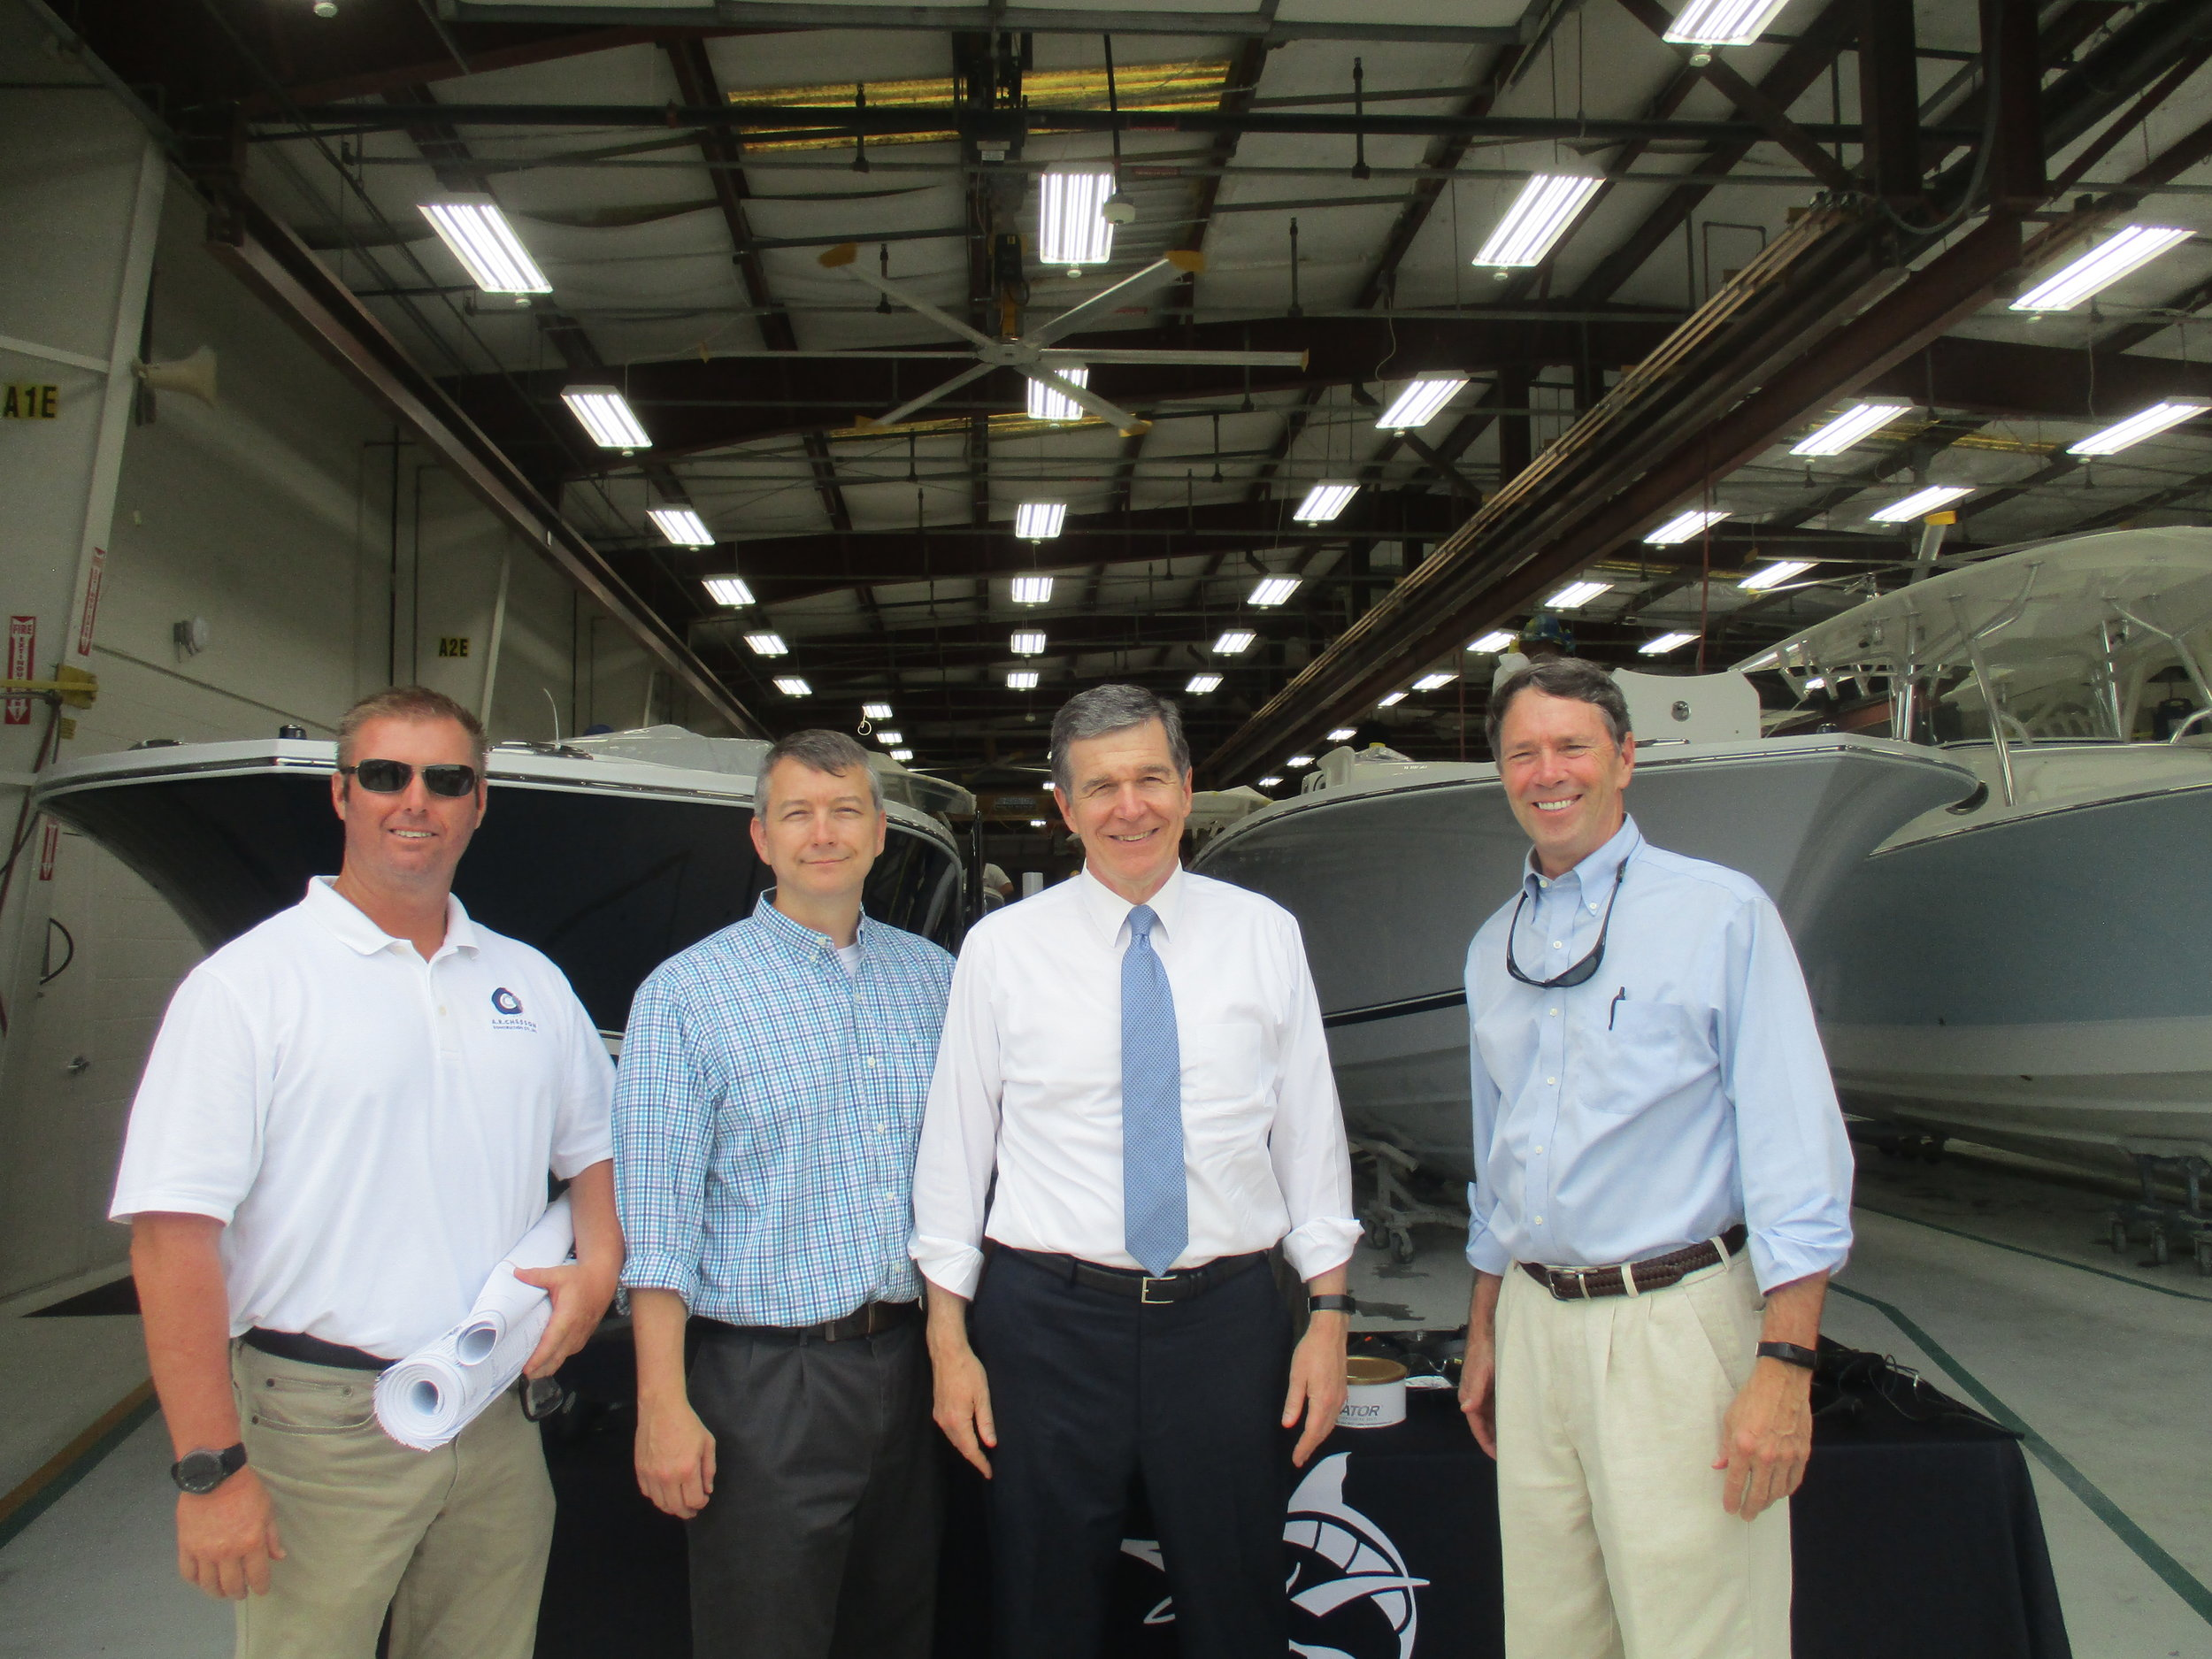 Pictured left to right: Greg Evans, Site Superintendent; Mitchell Ayers, Designer; Governor Roy Cooper; Al Chesson, President of A. R. Chesson Construction.